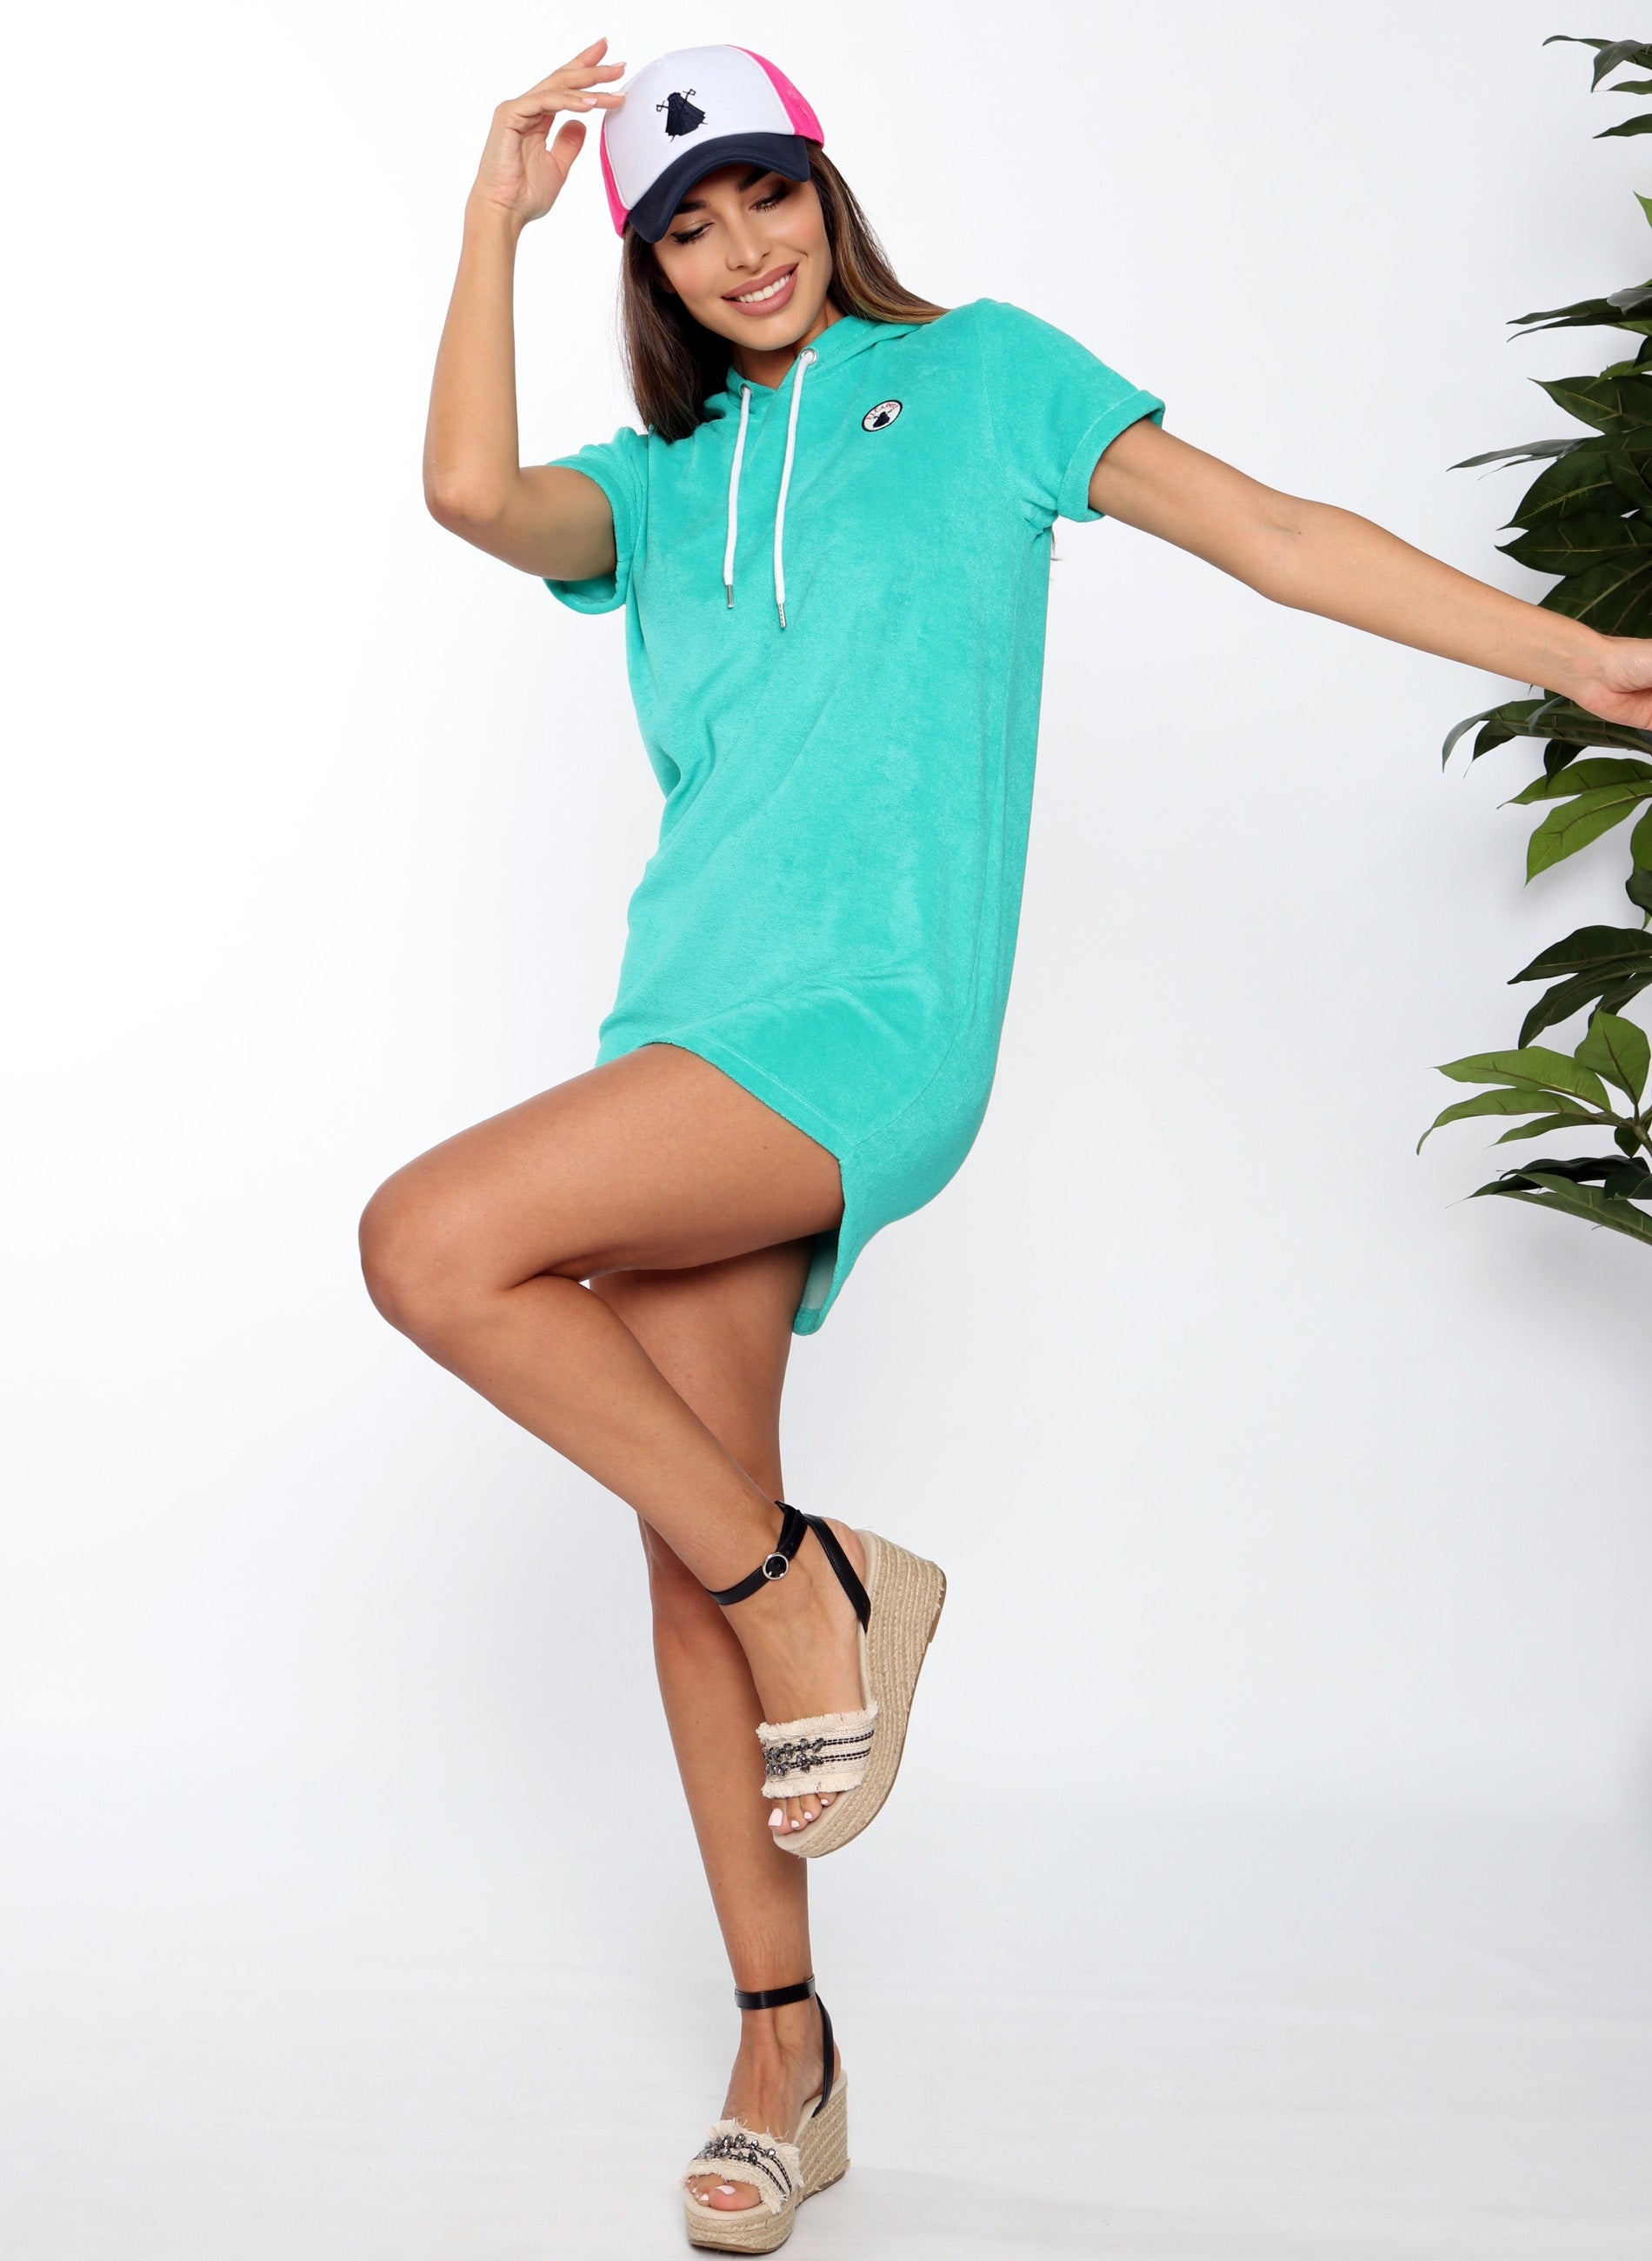 Turquoise Hooded Towel Dress Woman